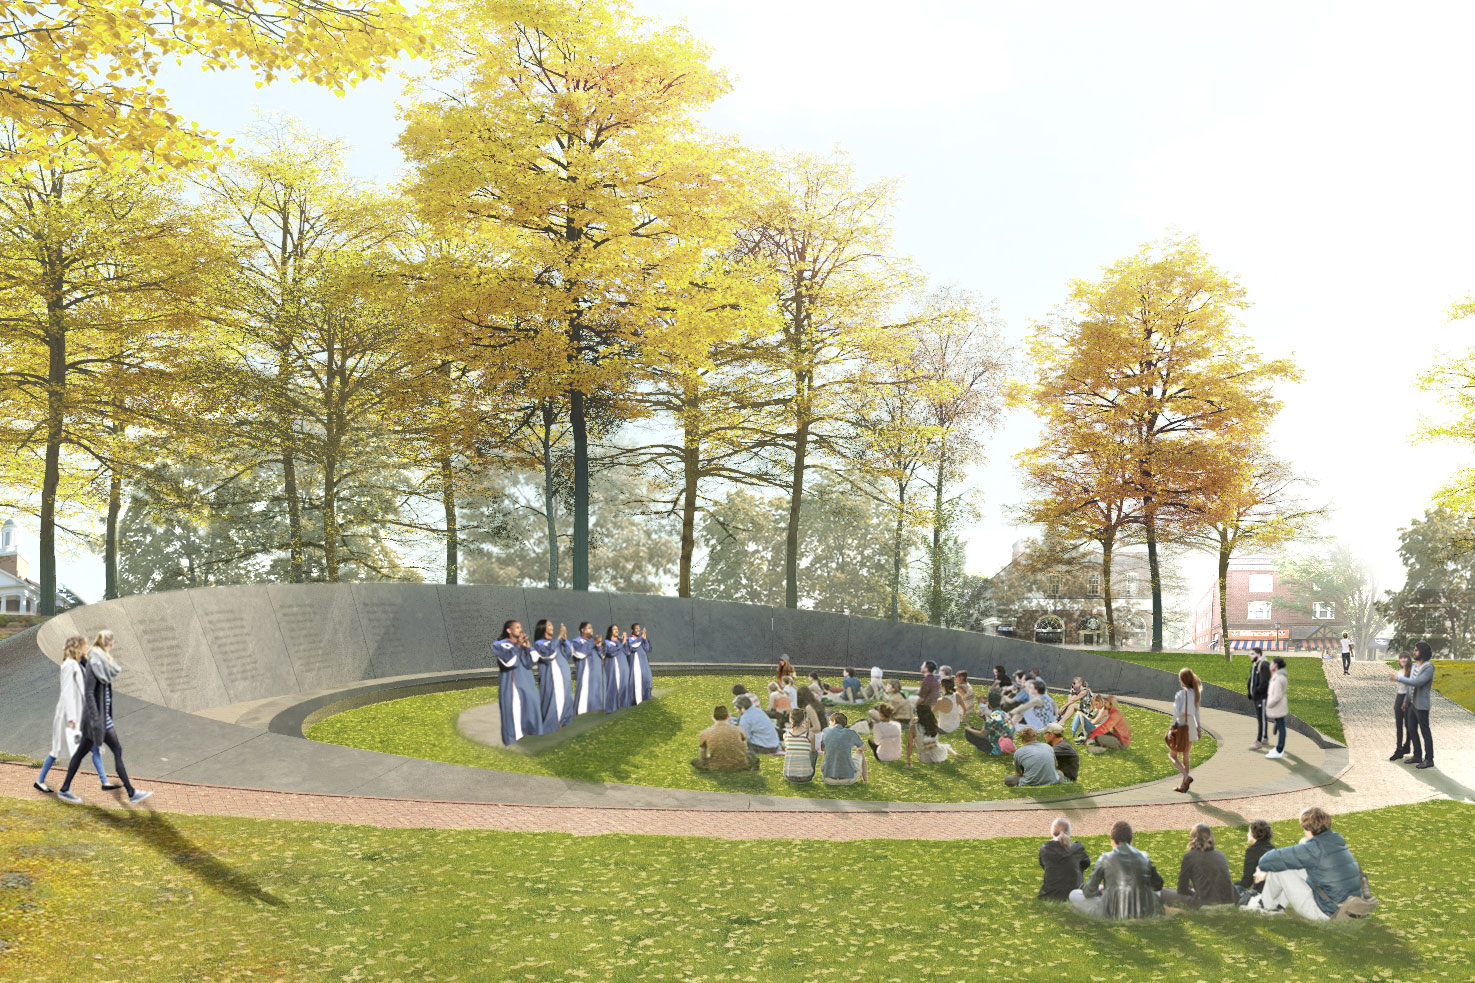 The Memorial to Enslaved Laborers, located east of the Rotunda near Brooks Hall, is currently under construction, with a public dedication ceremony scheduled for April 11. (Image courtesy Höweler+Yoon)